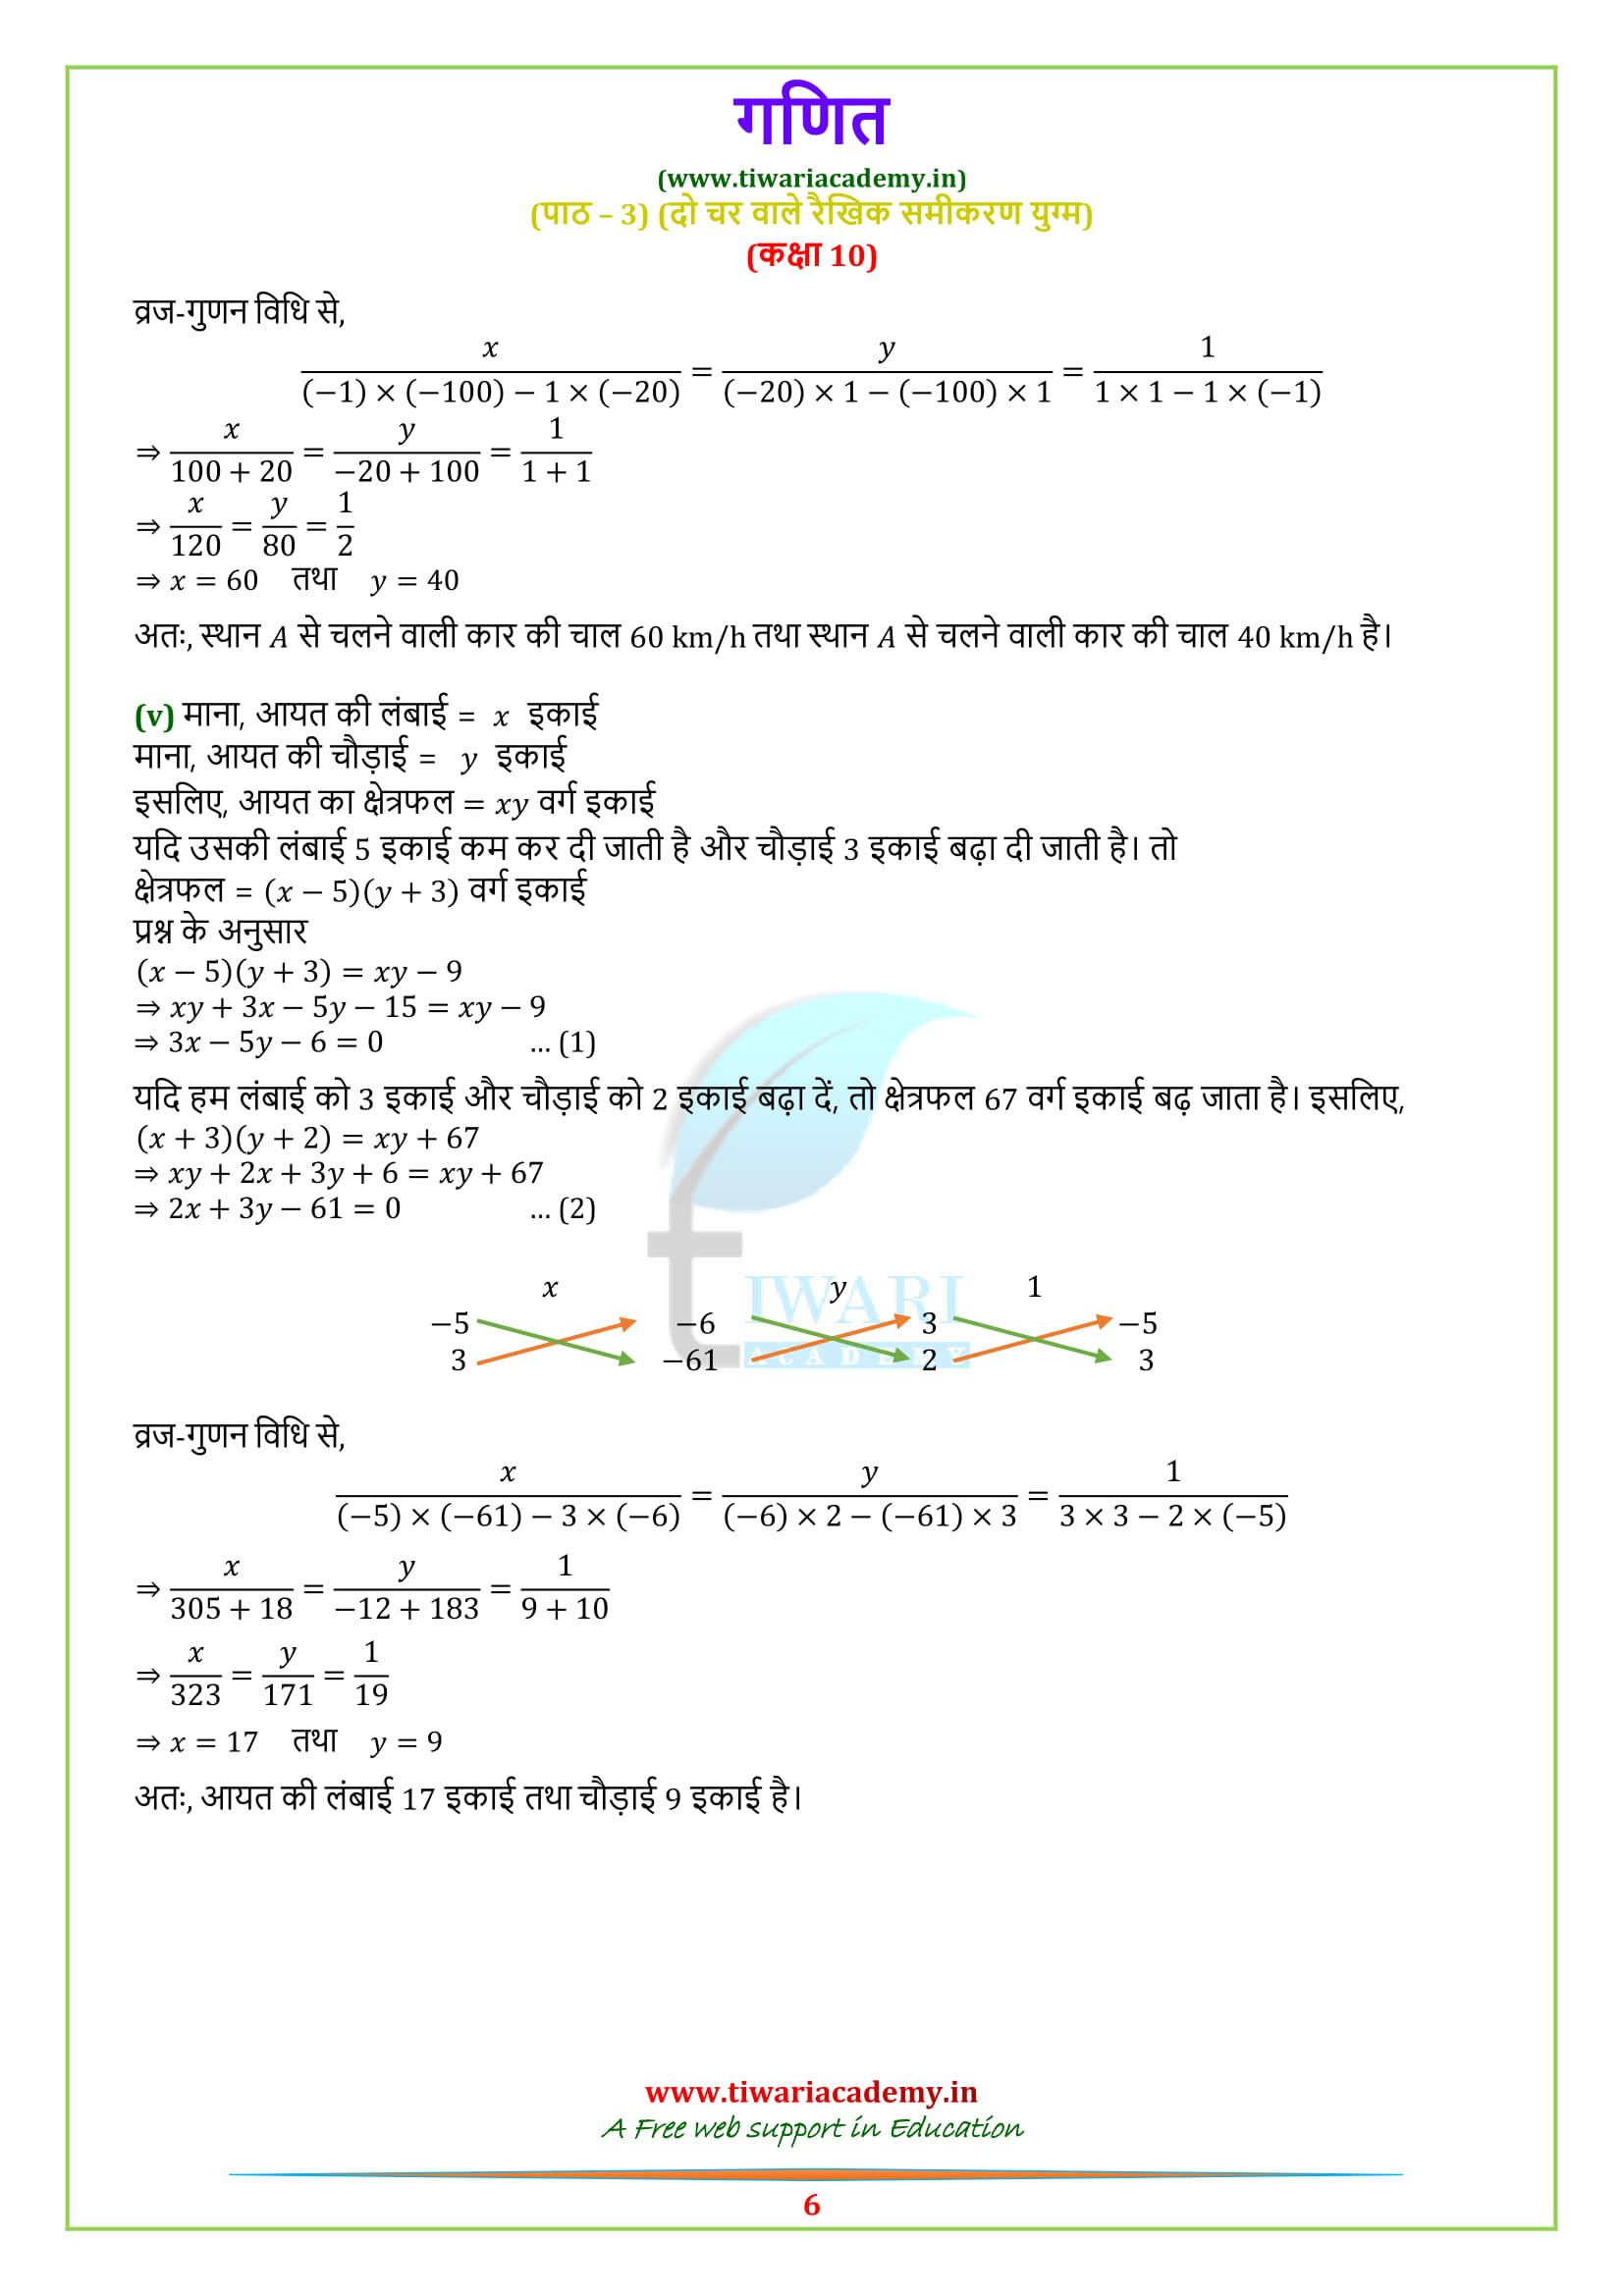 Class 10 Maths Exercise 3.5 ke hal updated for 2018-19